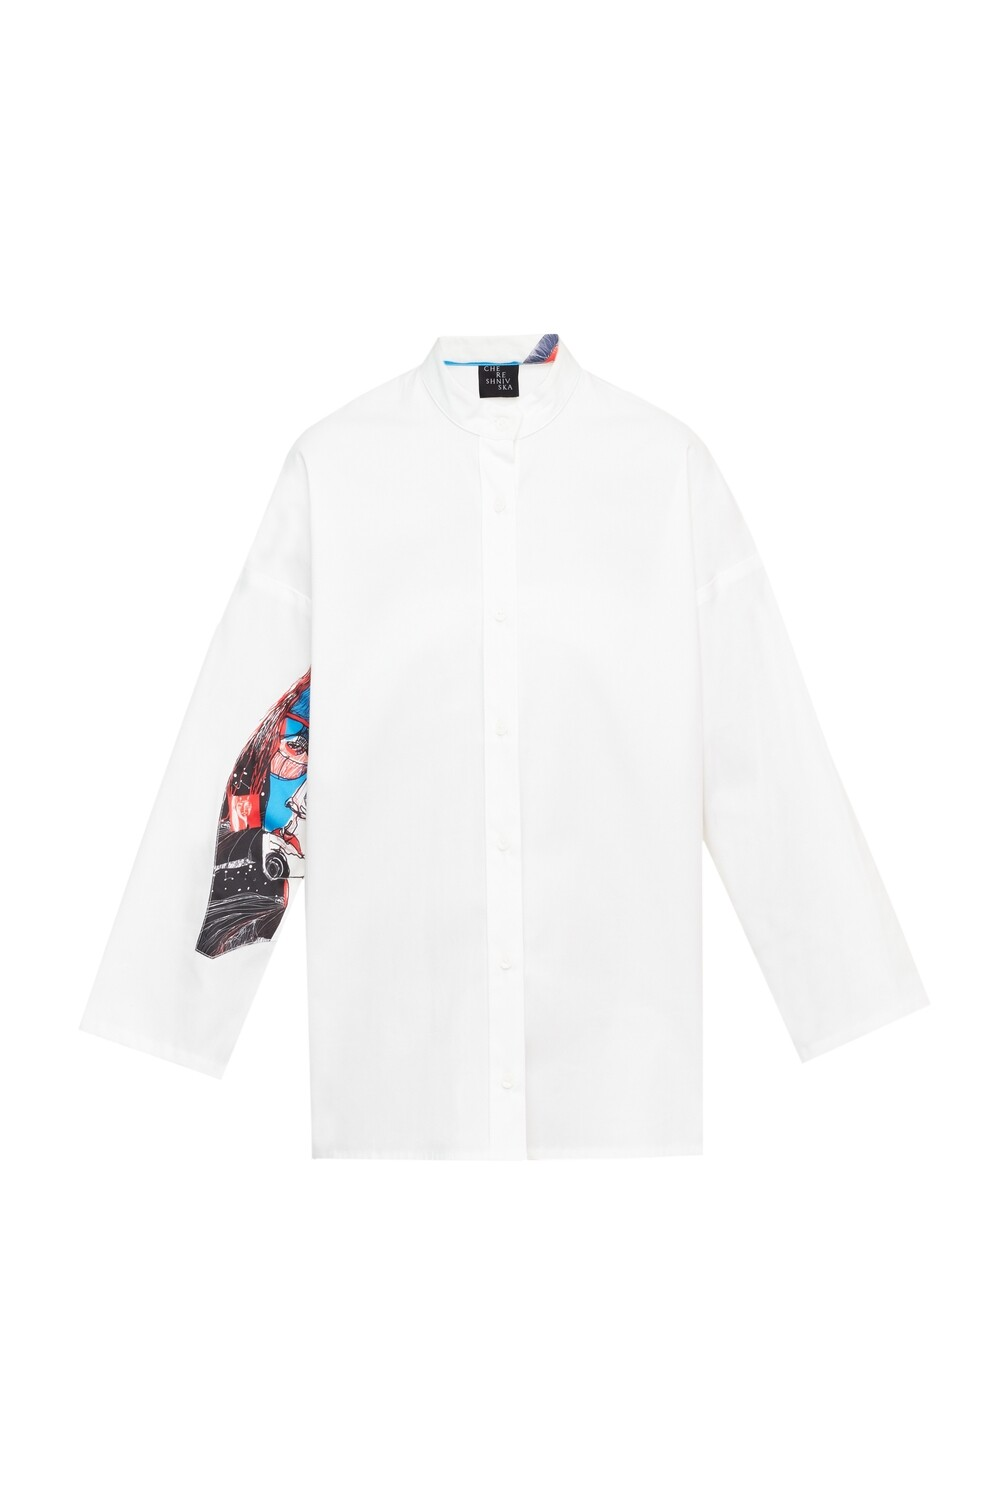 White oversize shirt with a print